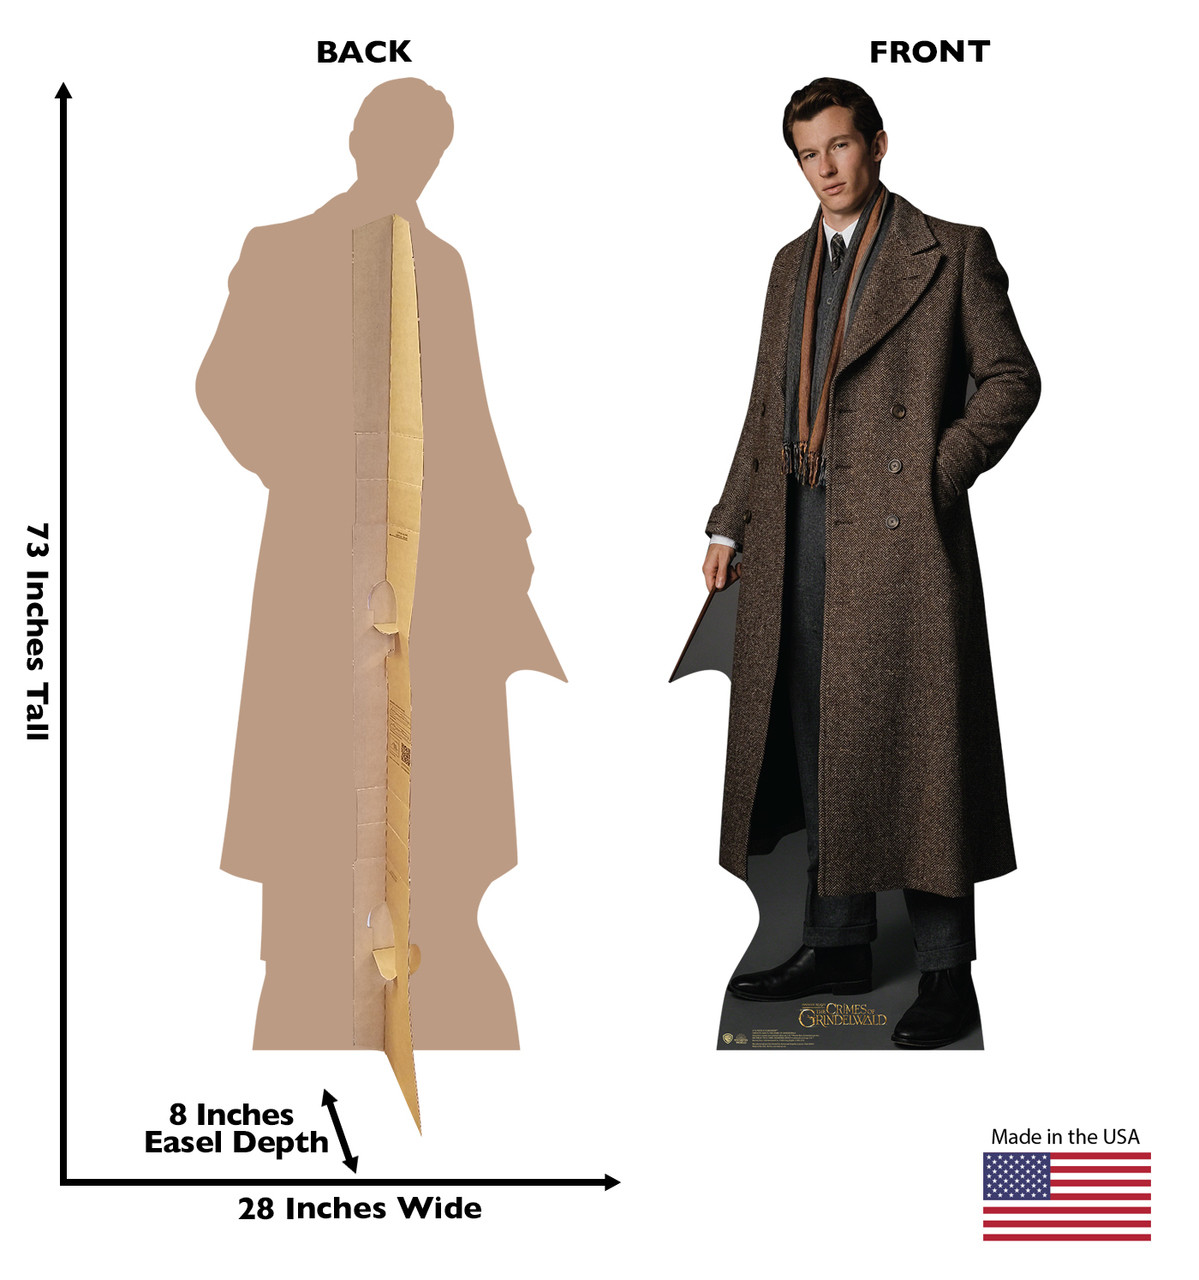 Theseus Scamander Lifes-size Cardboard Standee Front and Back with Dimensions.